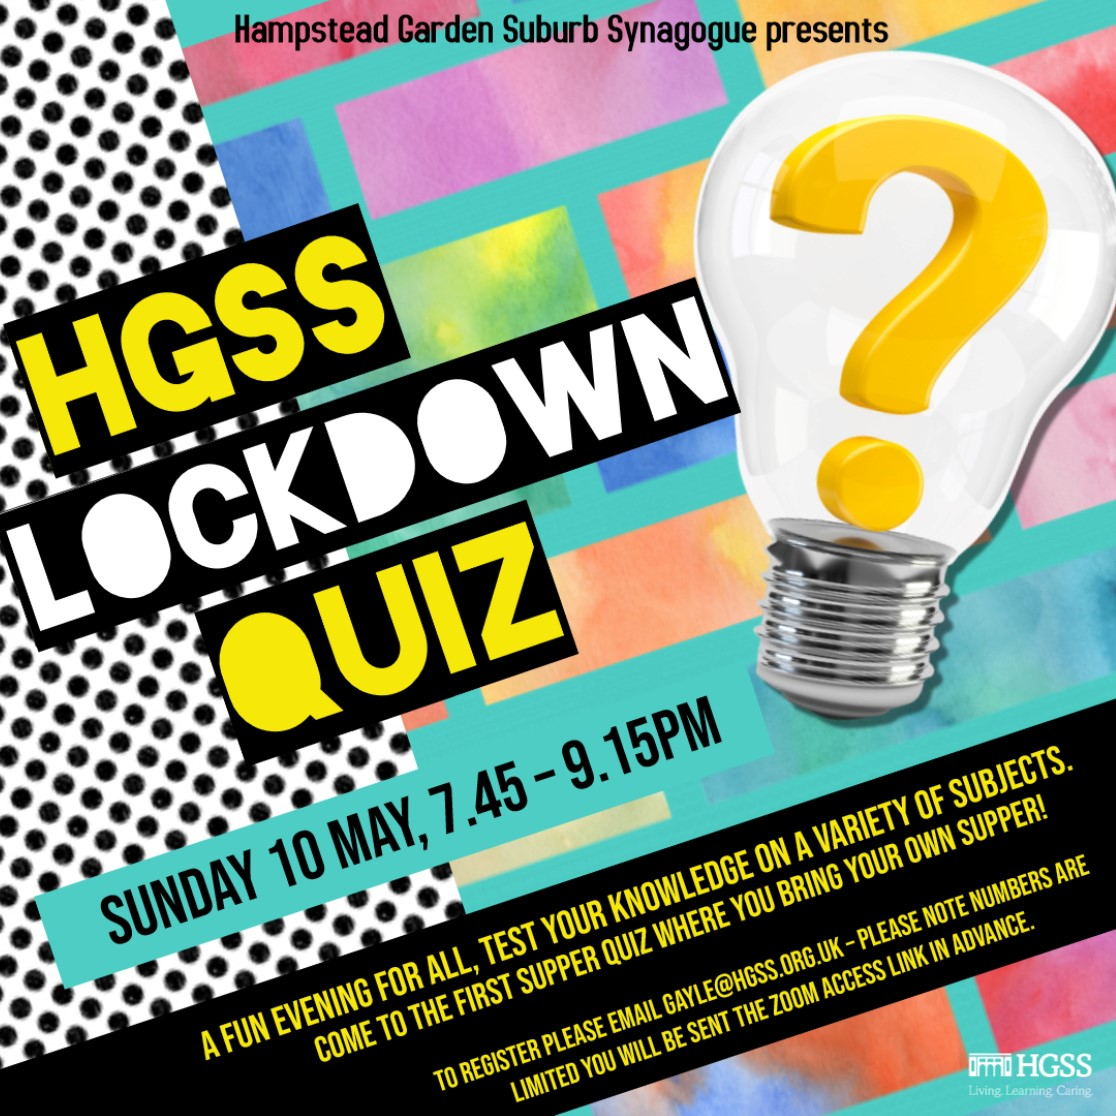 HGSS Lockdown Quiz @ Online (Contact Gayle for link)